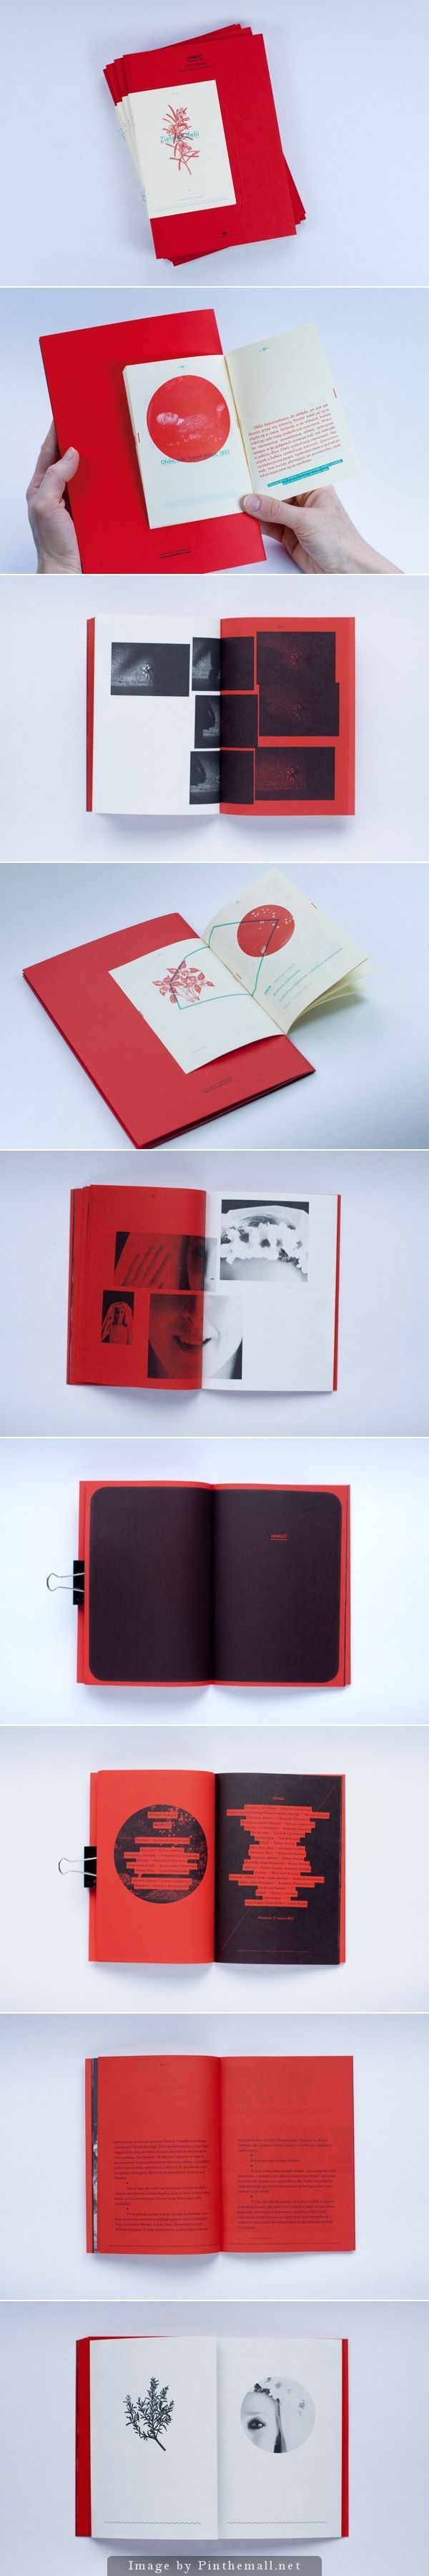 Red and white layout design